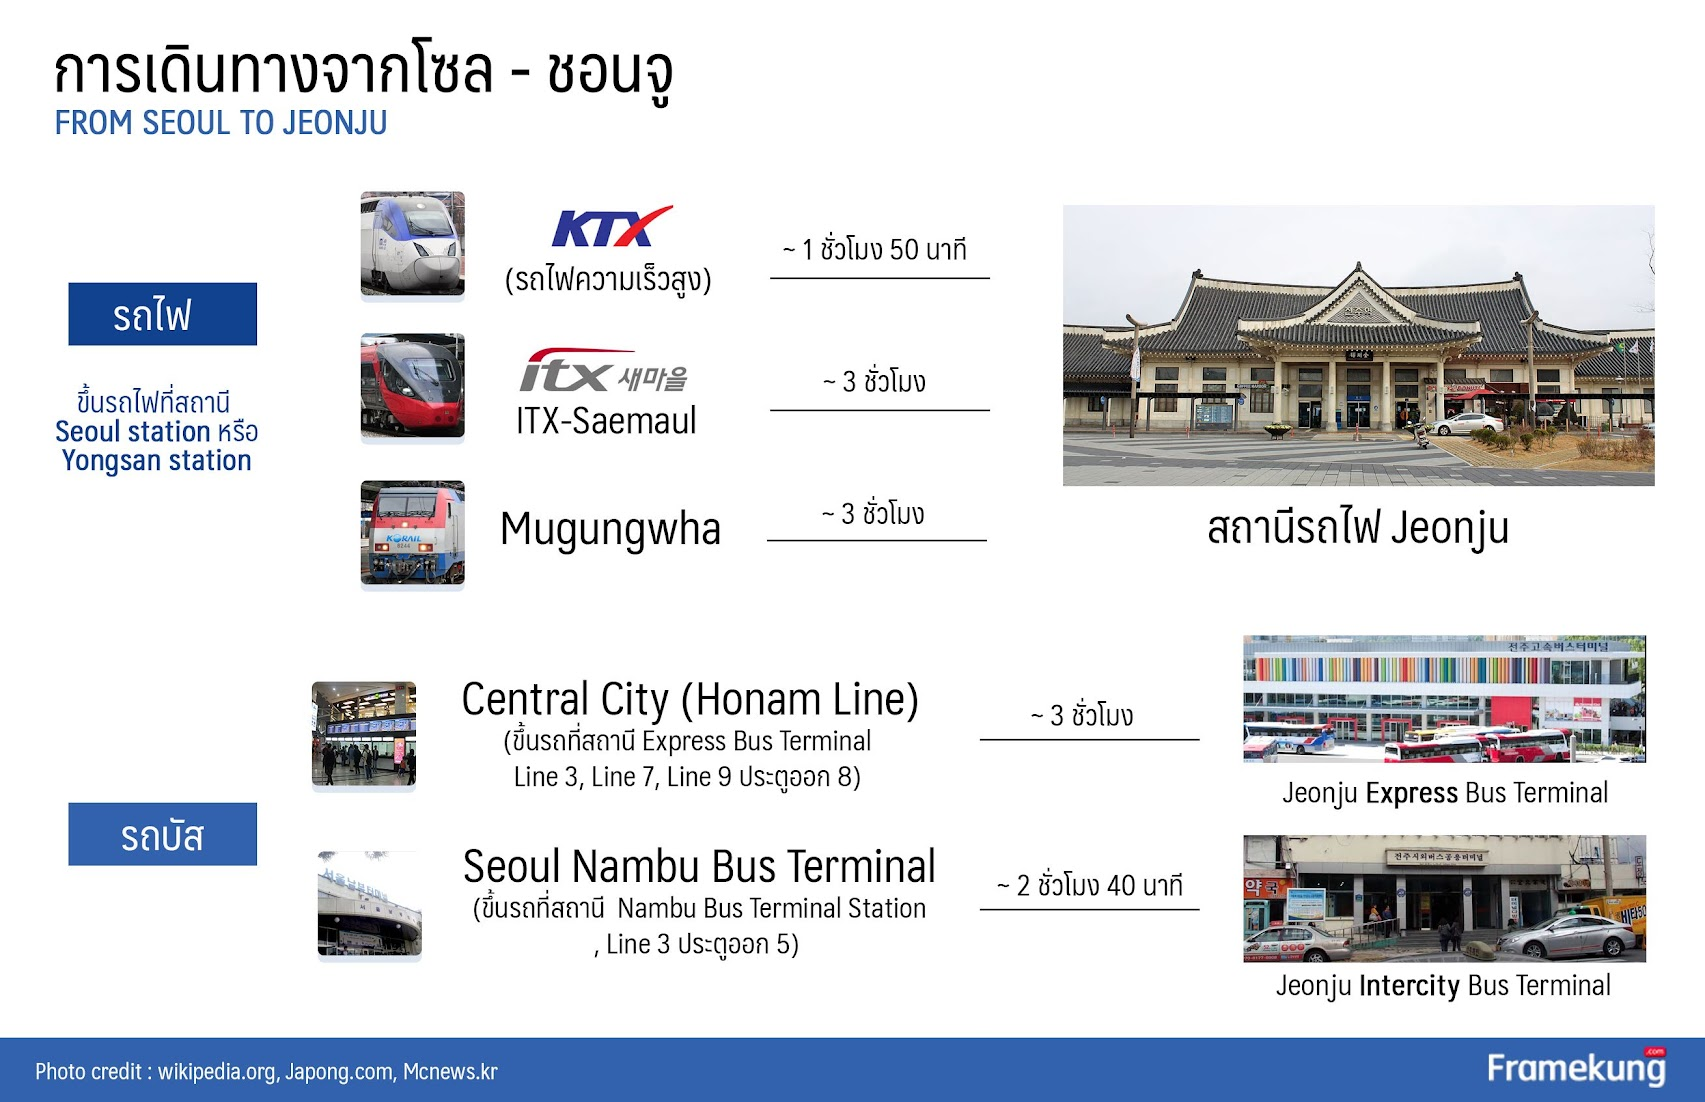 Direction : How to get to Jeonju from Seoul